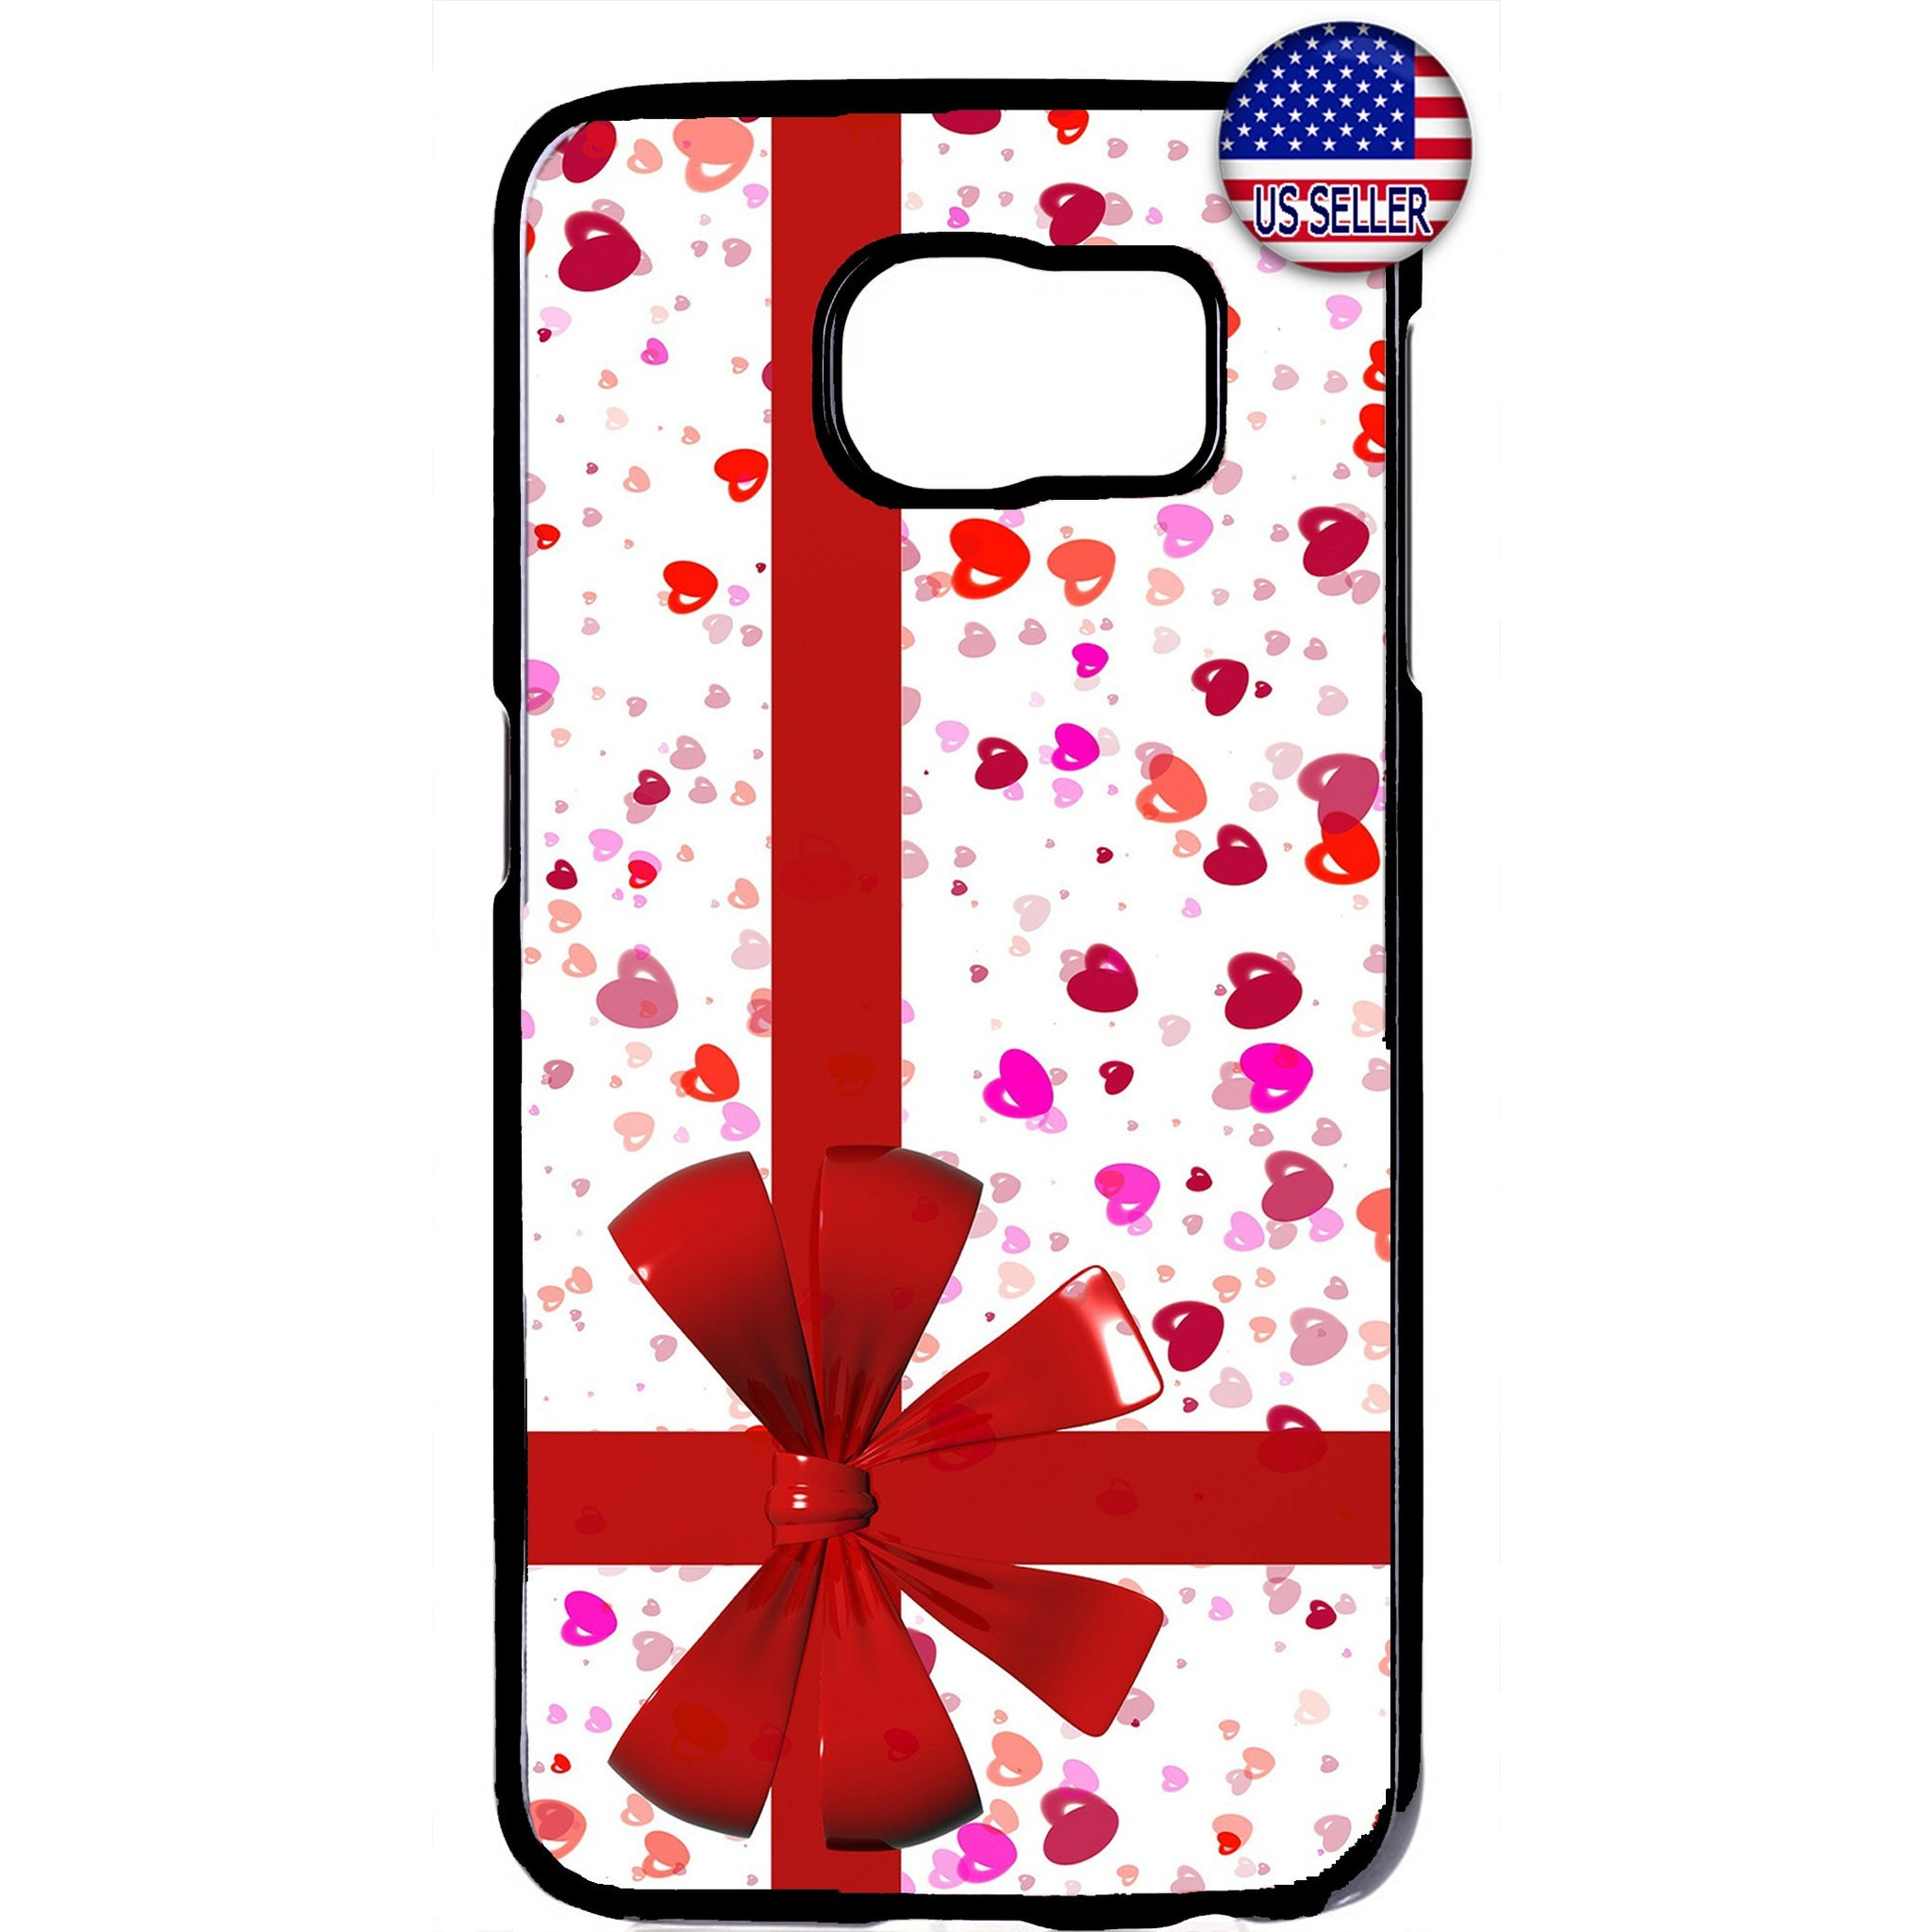 Merry Christmas Gift Red Bow Rubber Case Cover For Samsung Galaxy